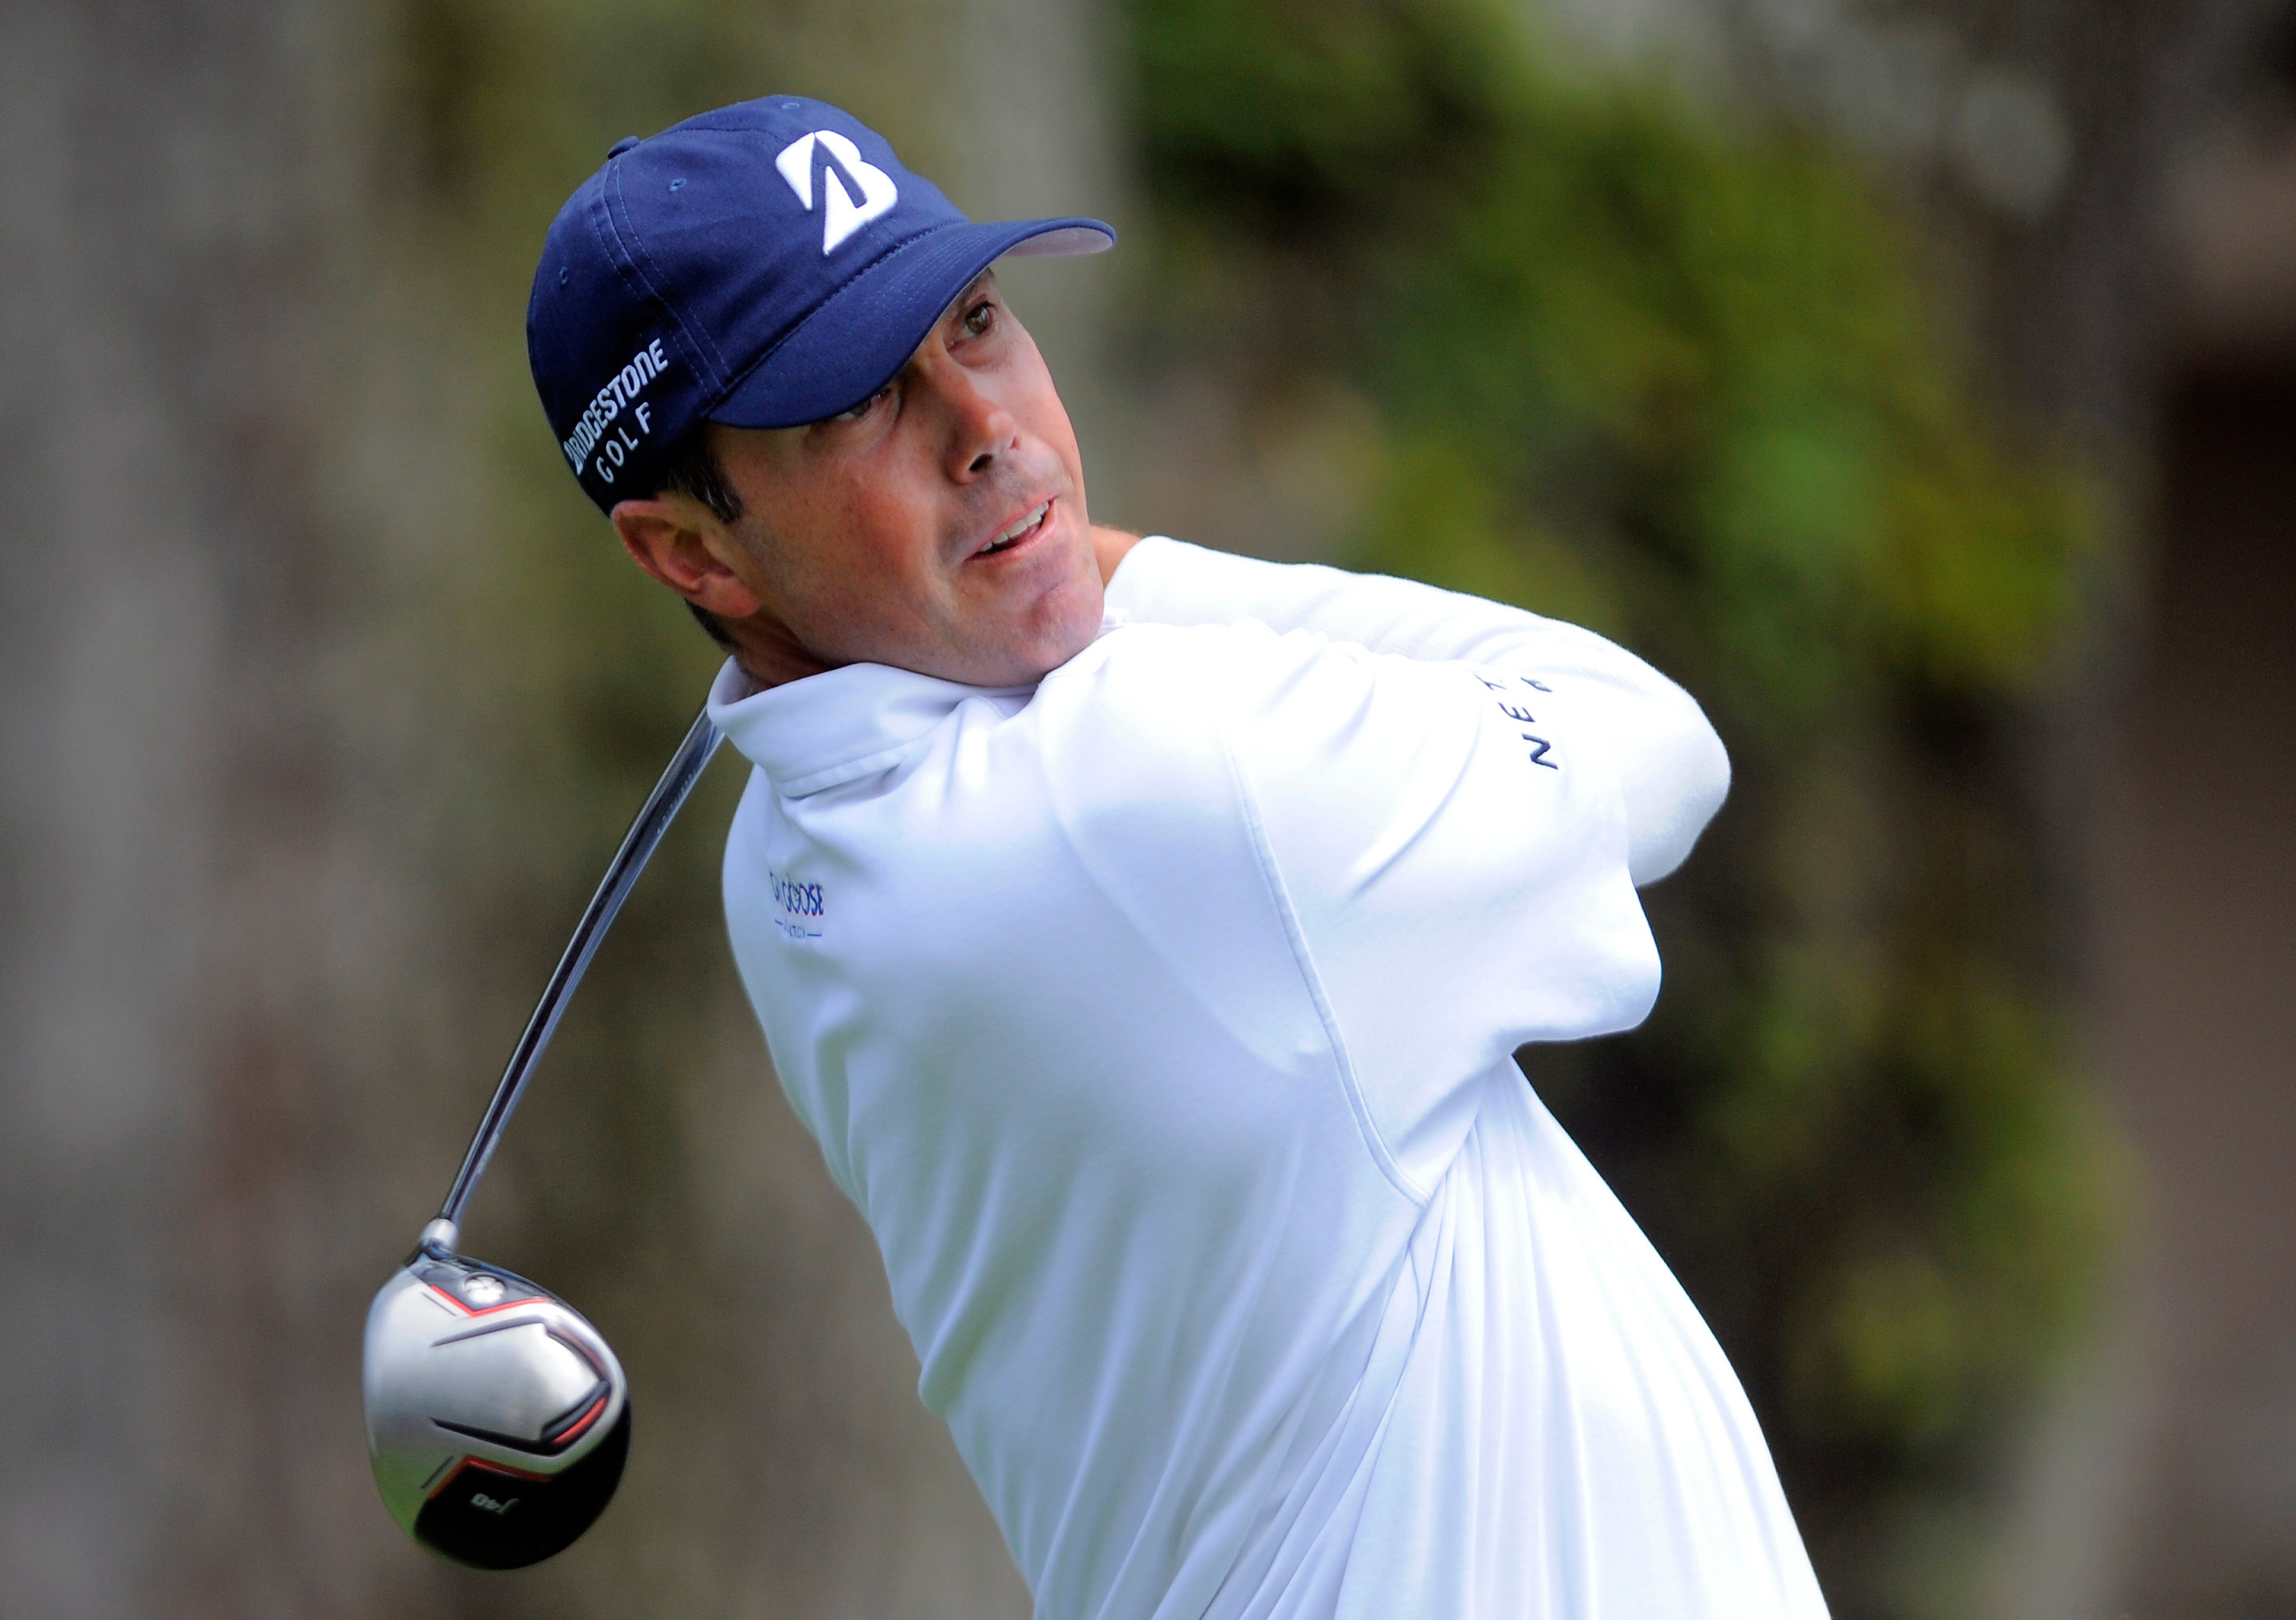 Matt Kuchar watches his drive off the third tee during the final round of the RBC Heritage golf tournament in Hilton Head Island, S.C., Sunday, April 20, 2014. (AP Photo/Stephen B. Morton)